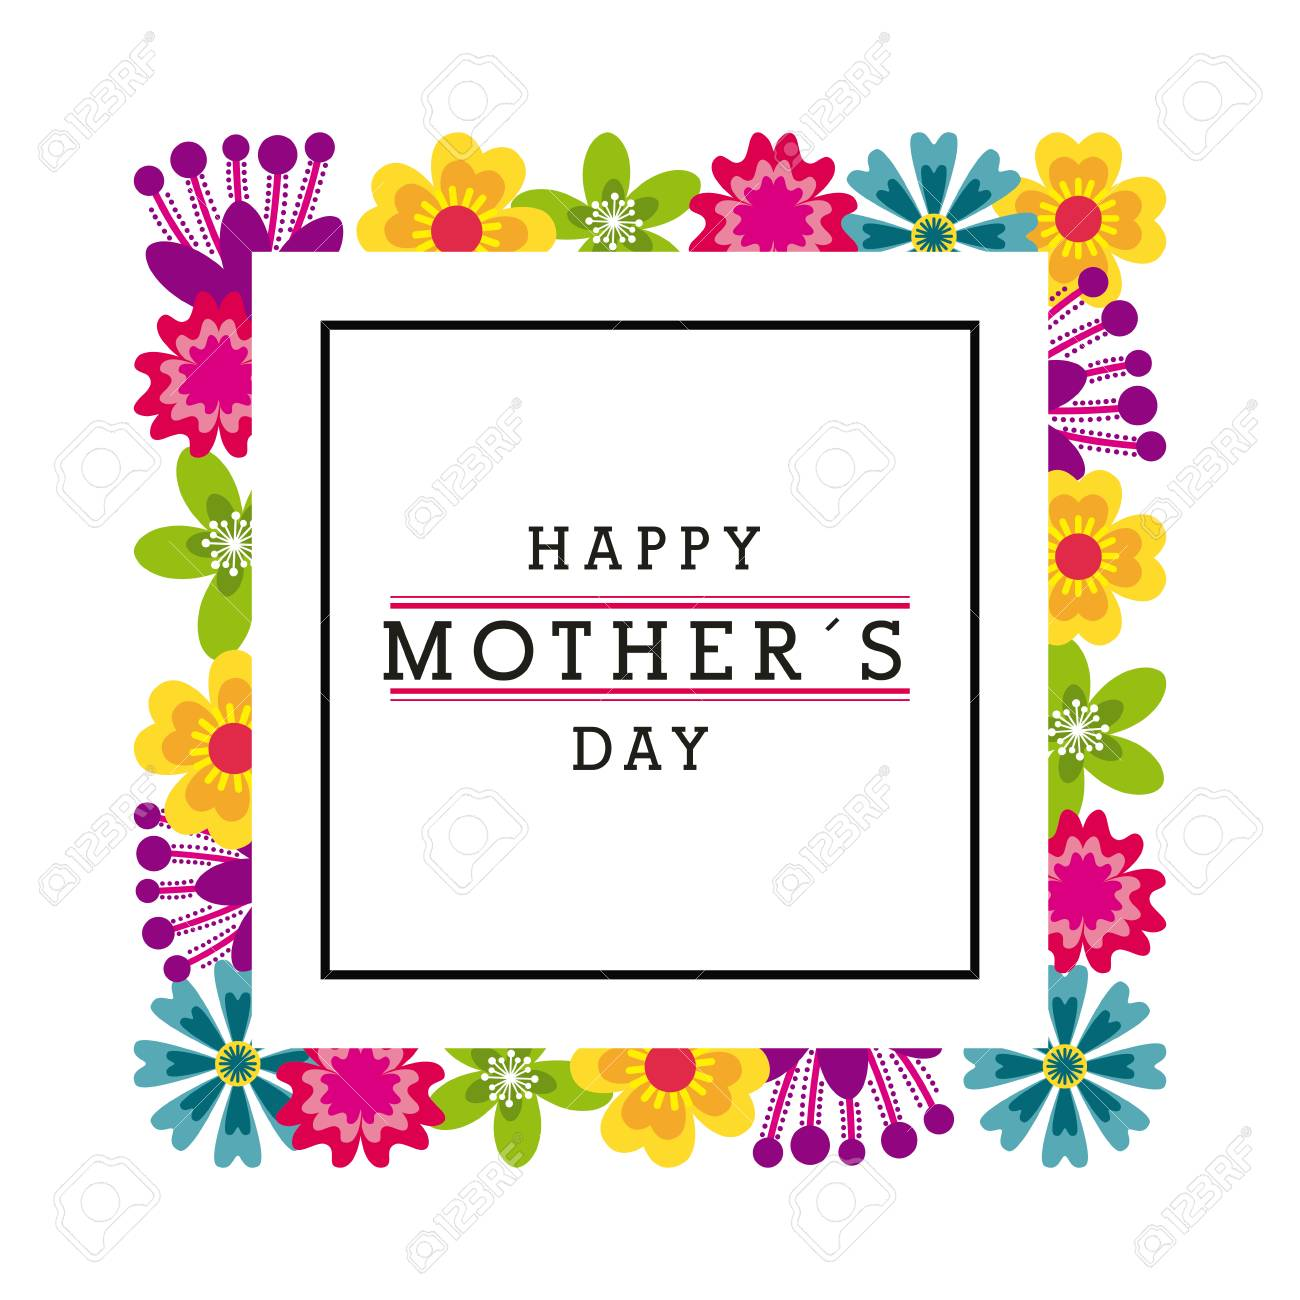 Happy Mothers Day Card With Beautiful Flowers Colorful Design